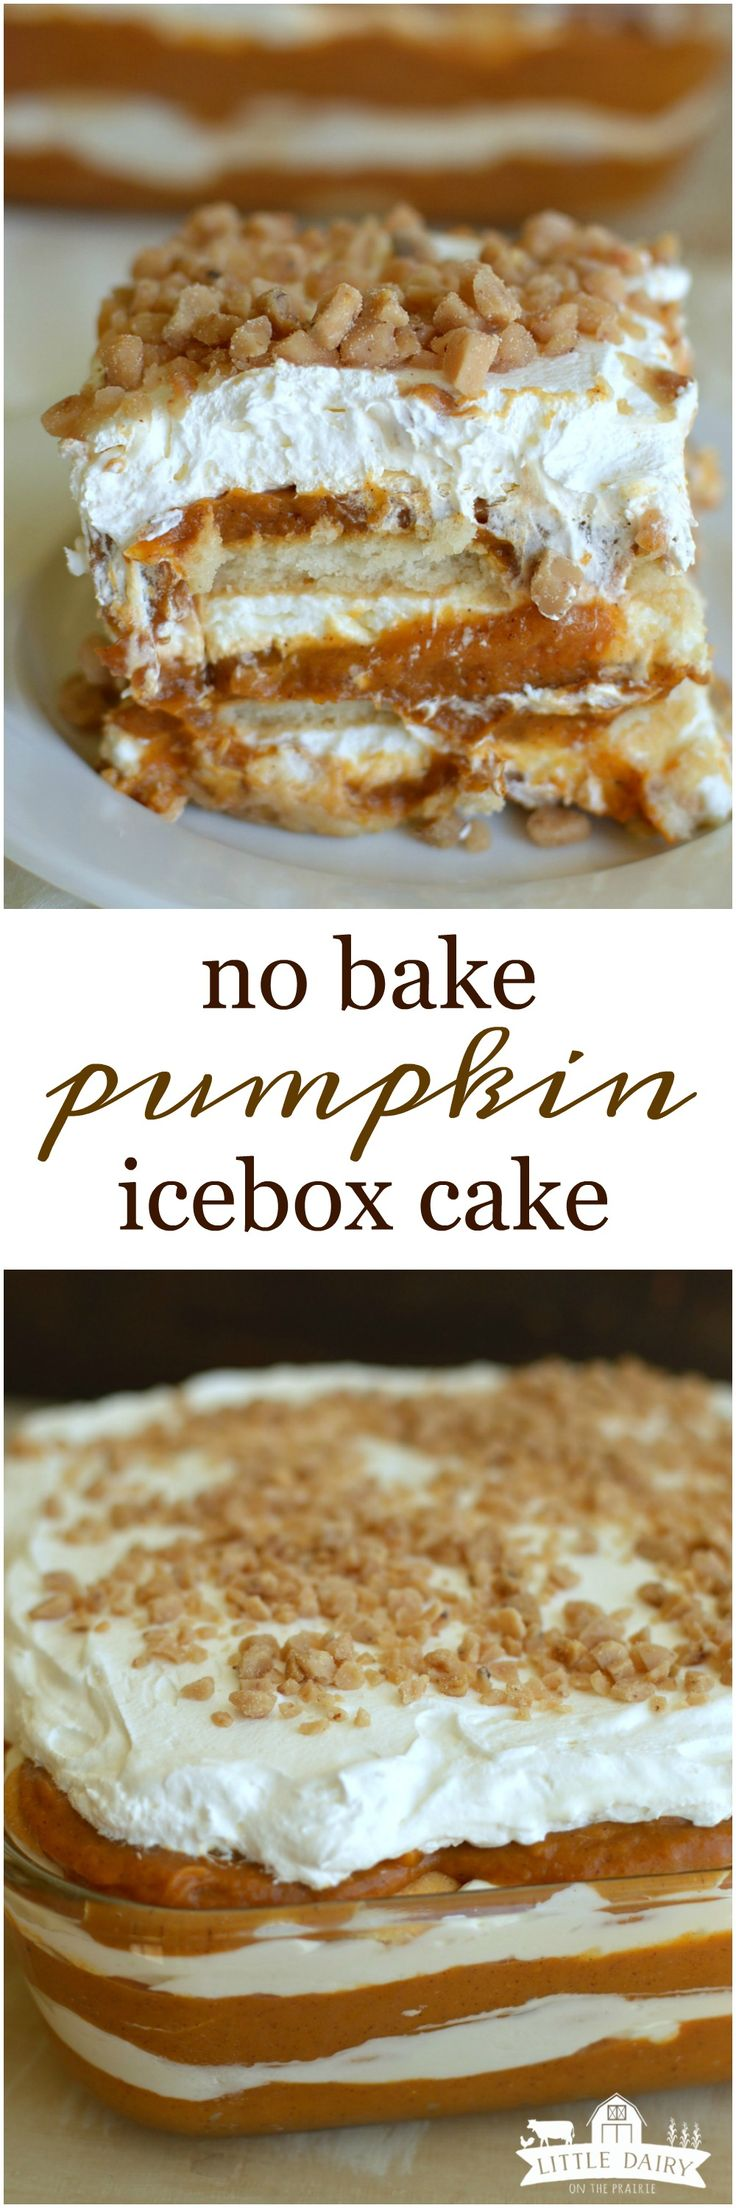 Every layer of this No Bake Pumpkin Icebox Cake is divine! All the way from the…